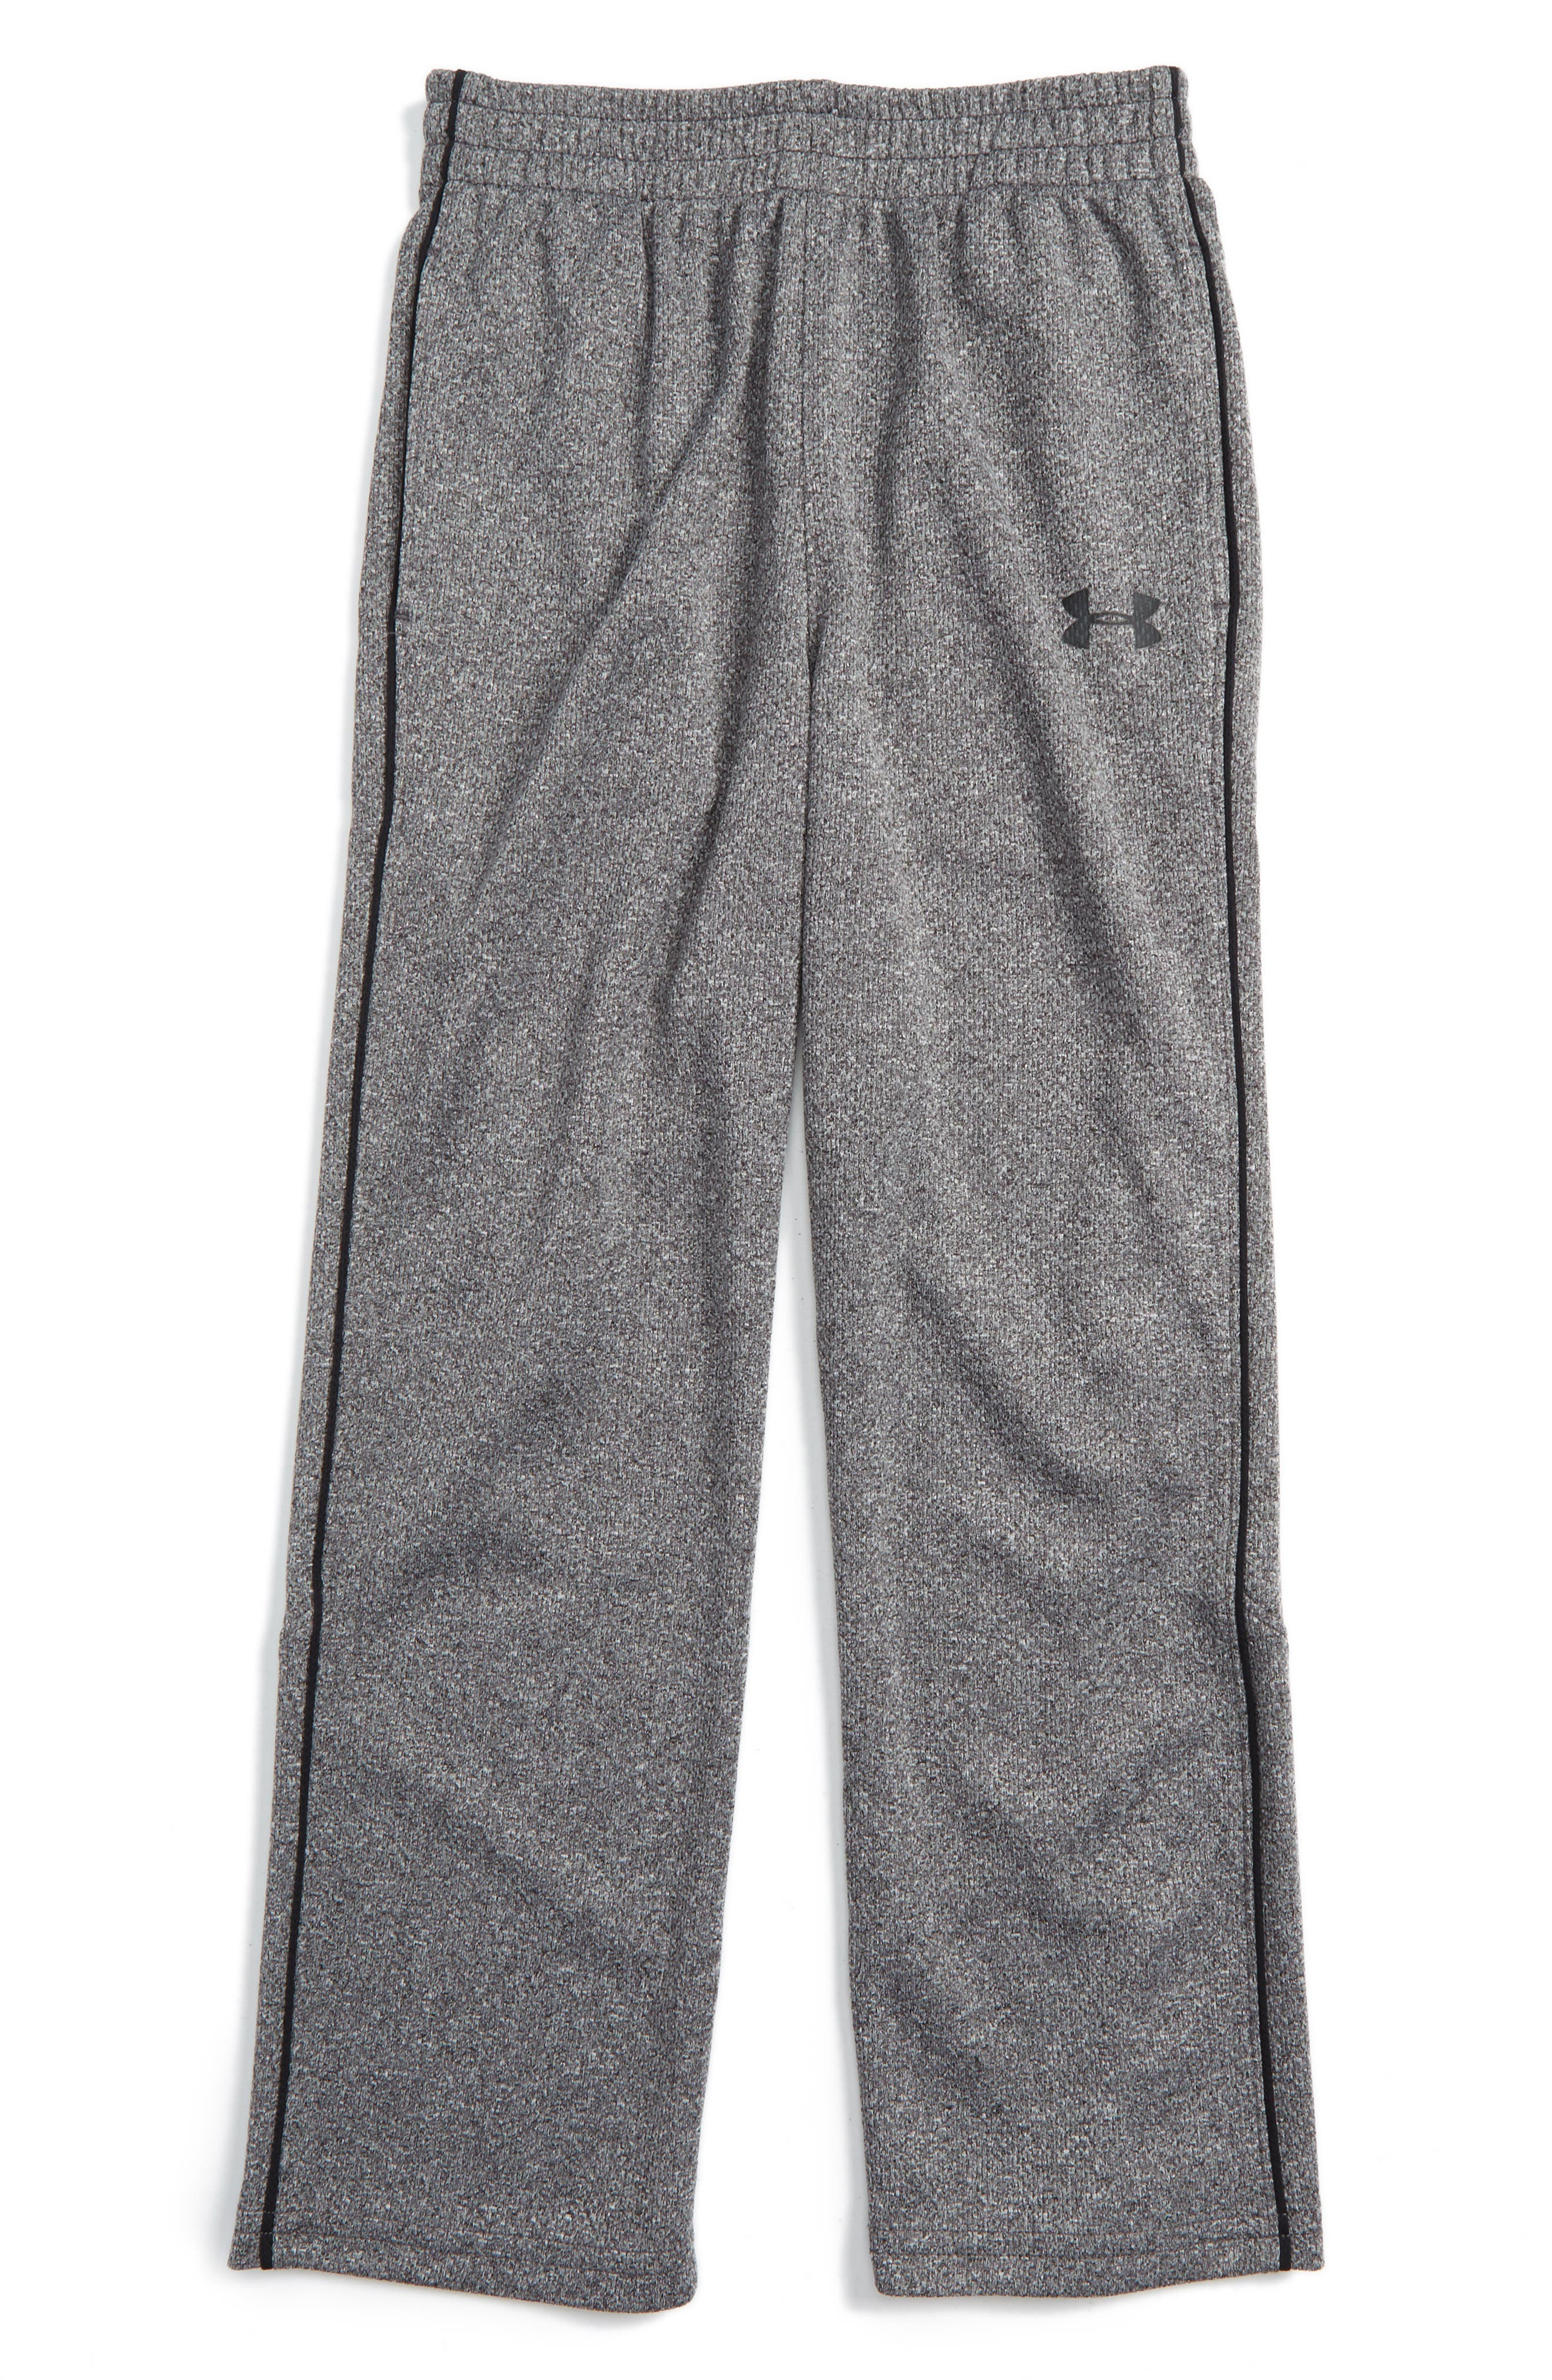 Midweight Champ Warm-Up Pants,                             Main thumbnail 1, color,                             Carbon Heather